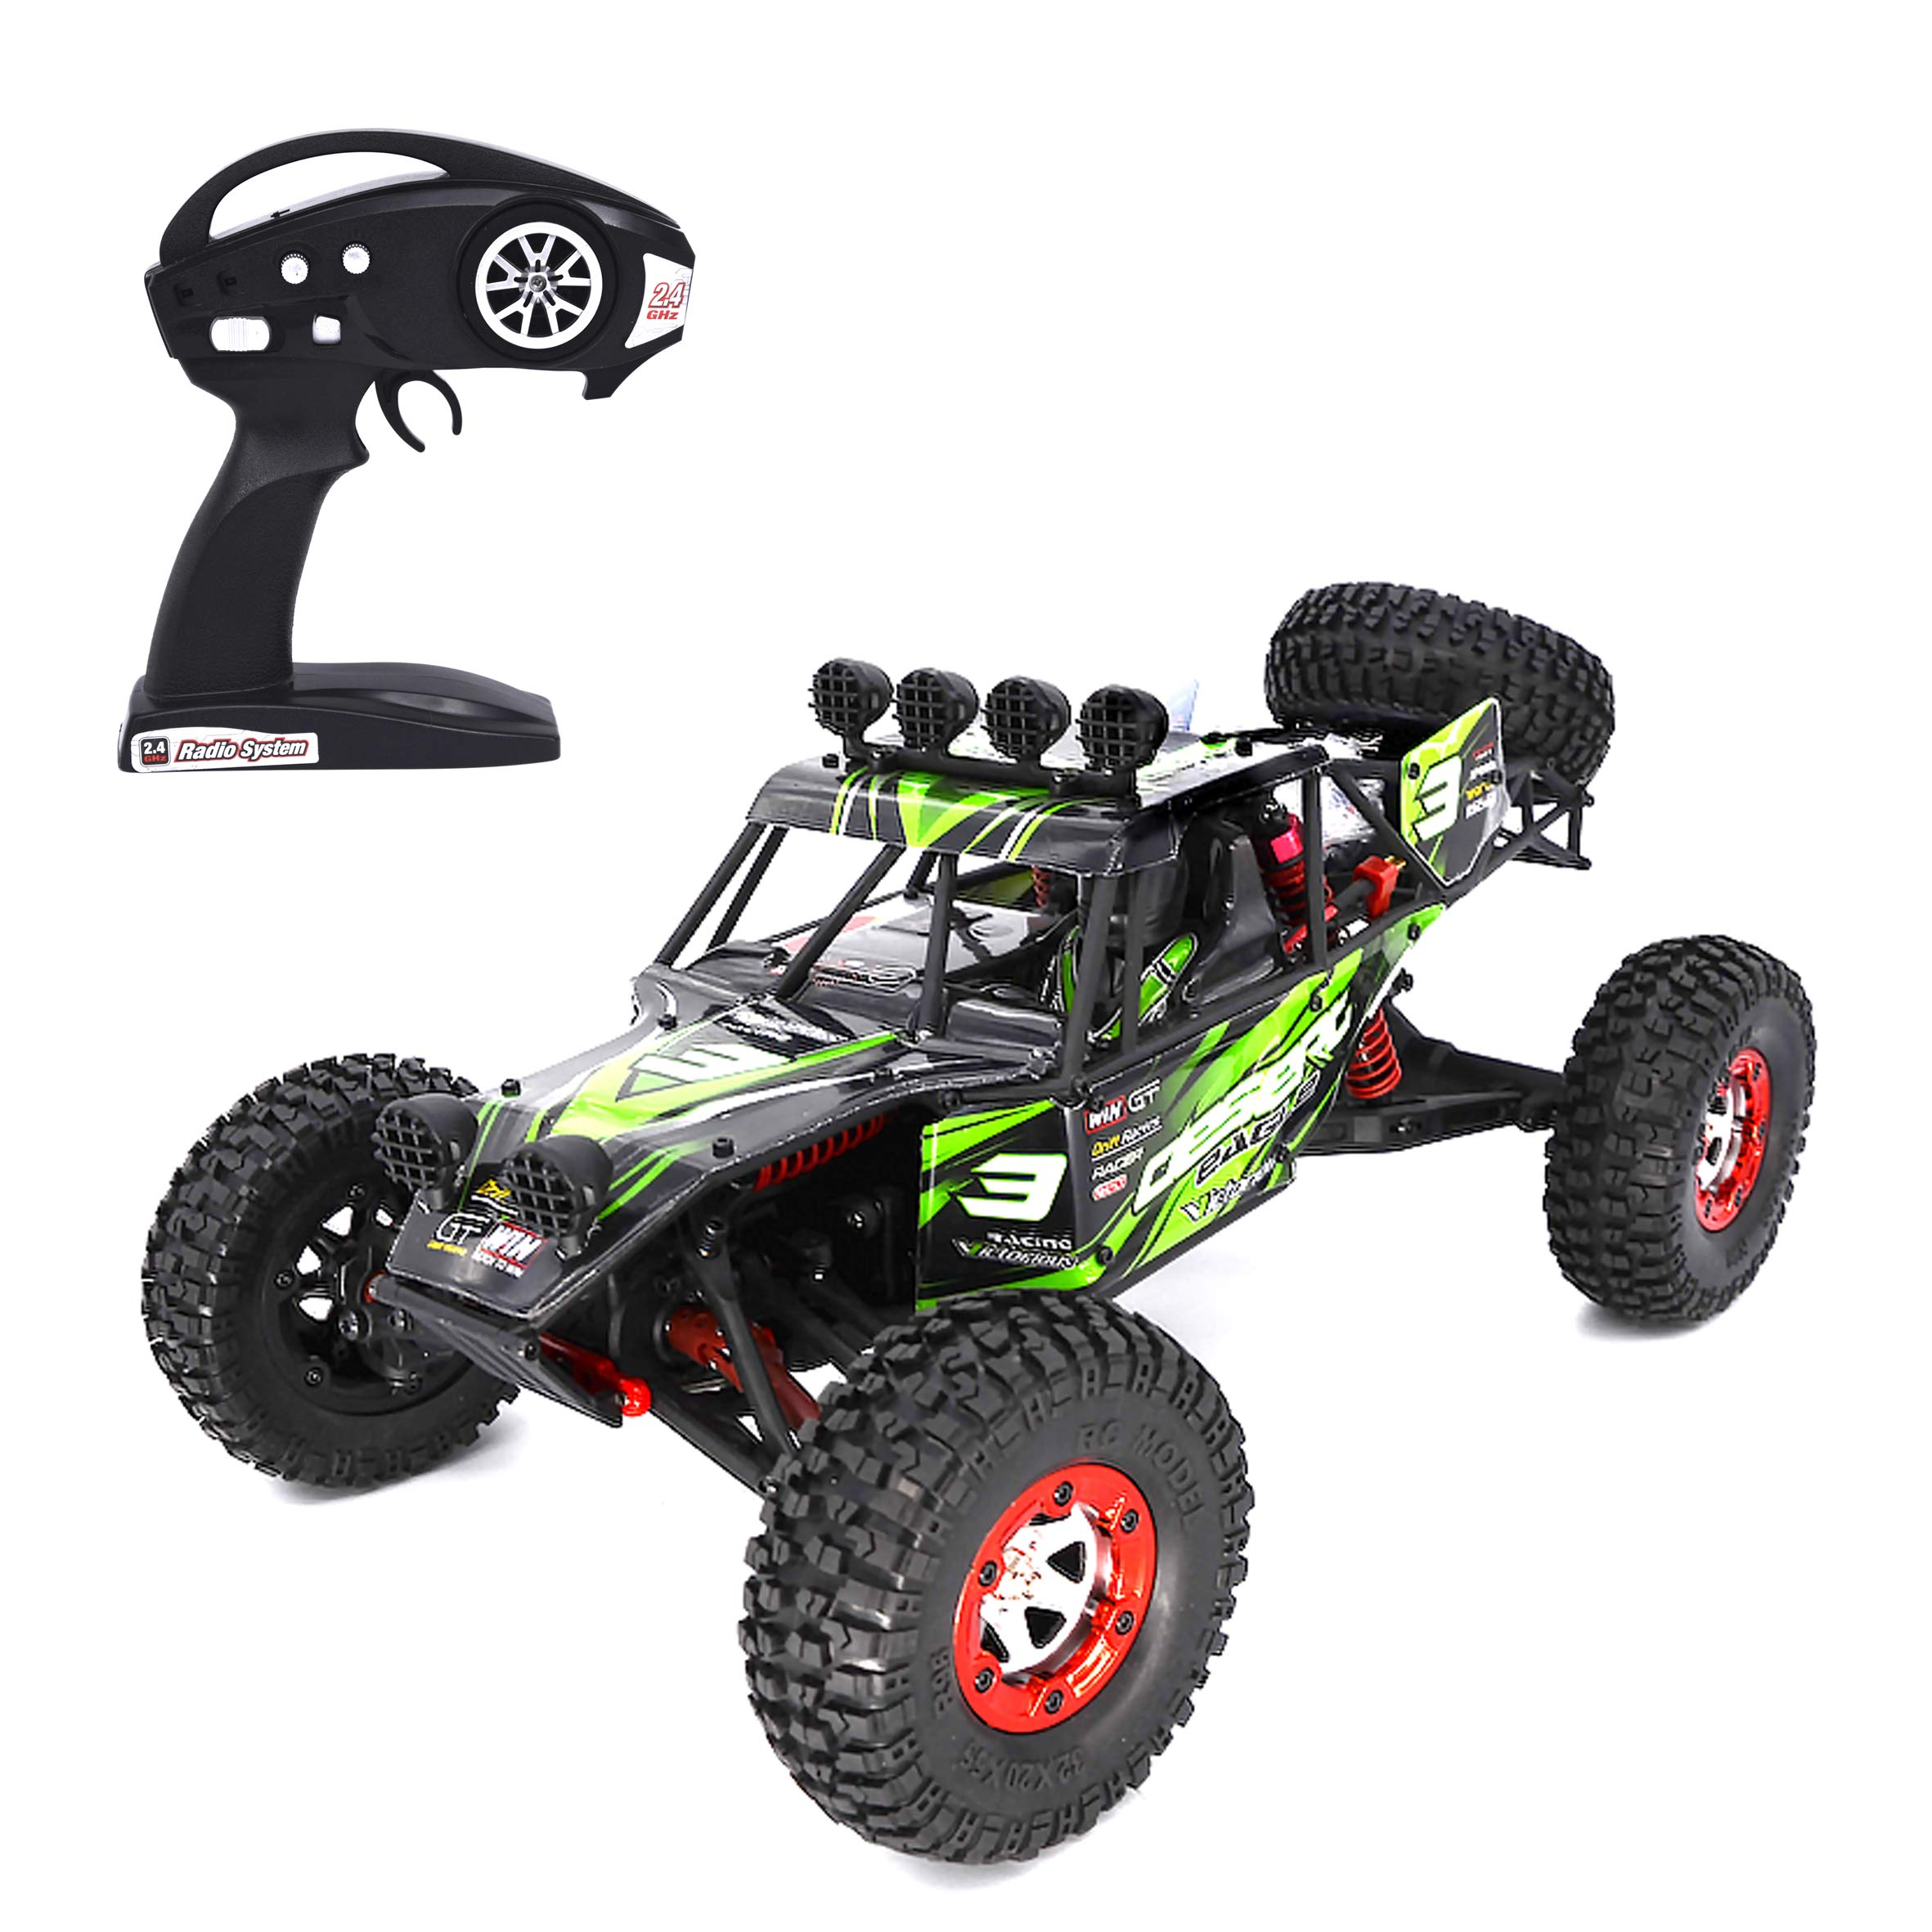 KELIWOW Electric RC Buggy 1/12 Remote Control Car 2.4Ghz 4WD Desert Off-Road Truck 40KM/h High Speed All Terrain RC Rock Crawler Monster Car for Kids and Adults-Green